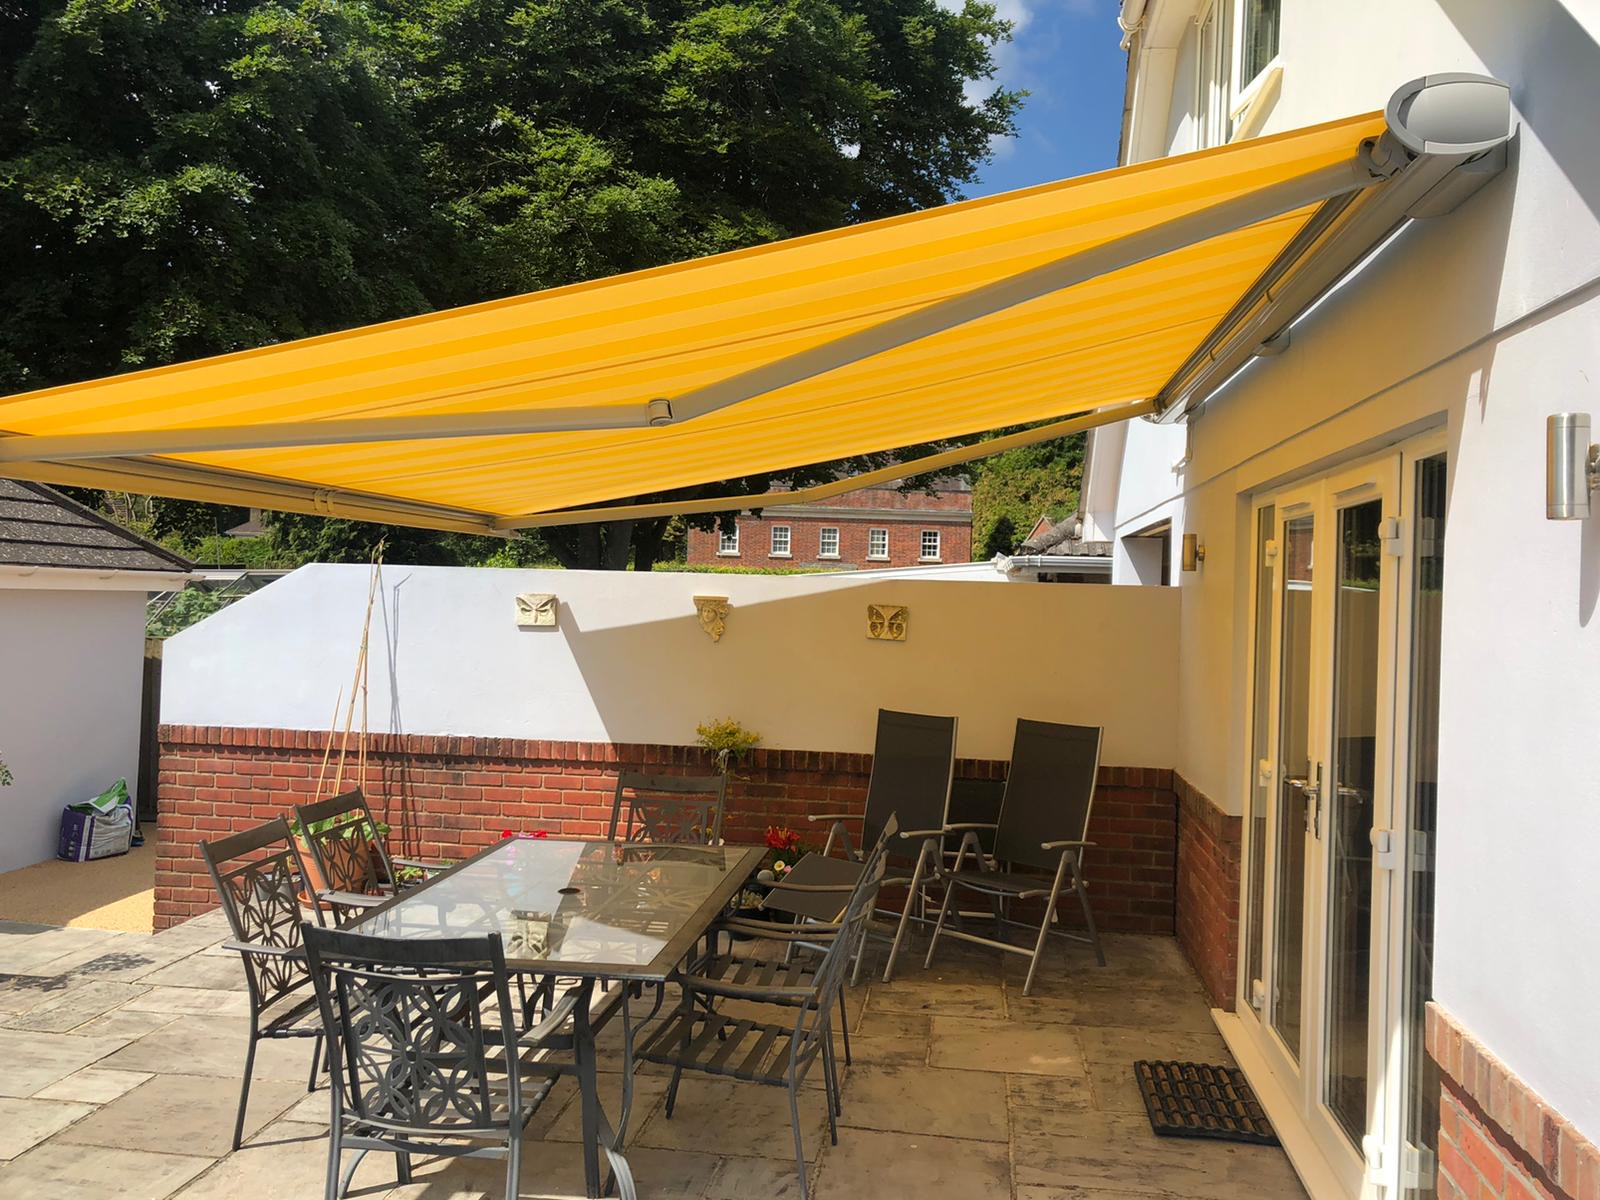 Yellow Opal Weinor Awning Fitted in Ferdown Dorset - Awningsouth